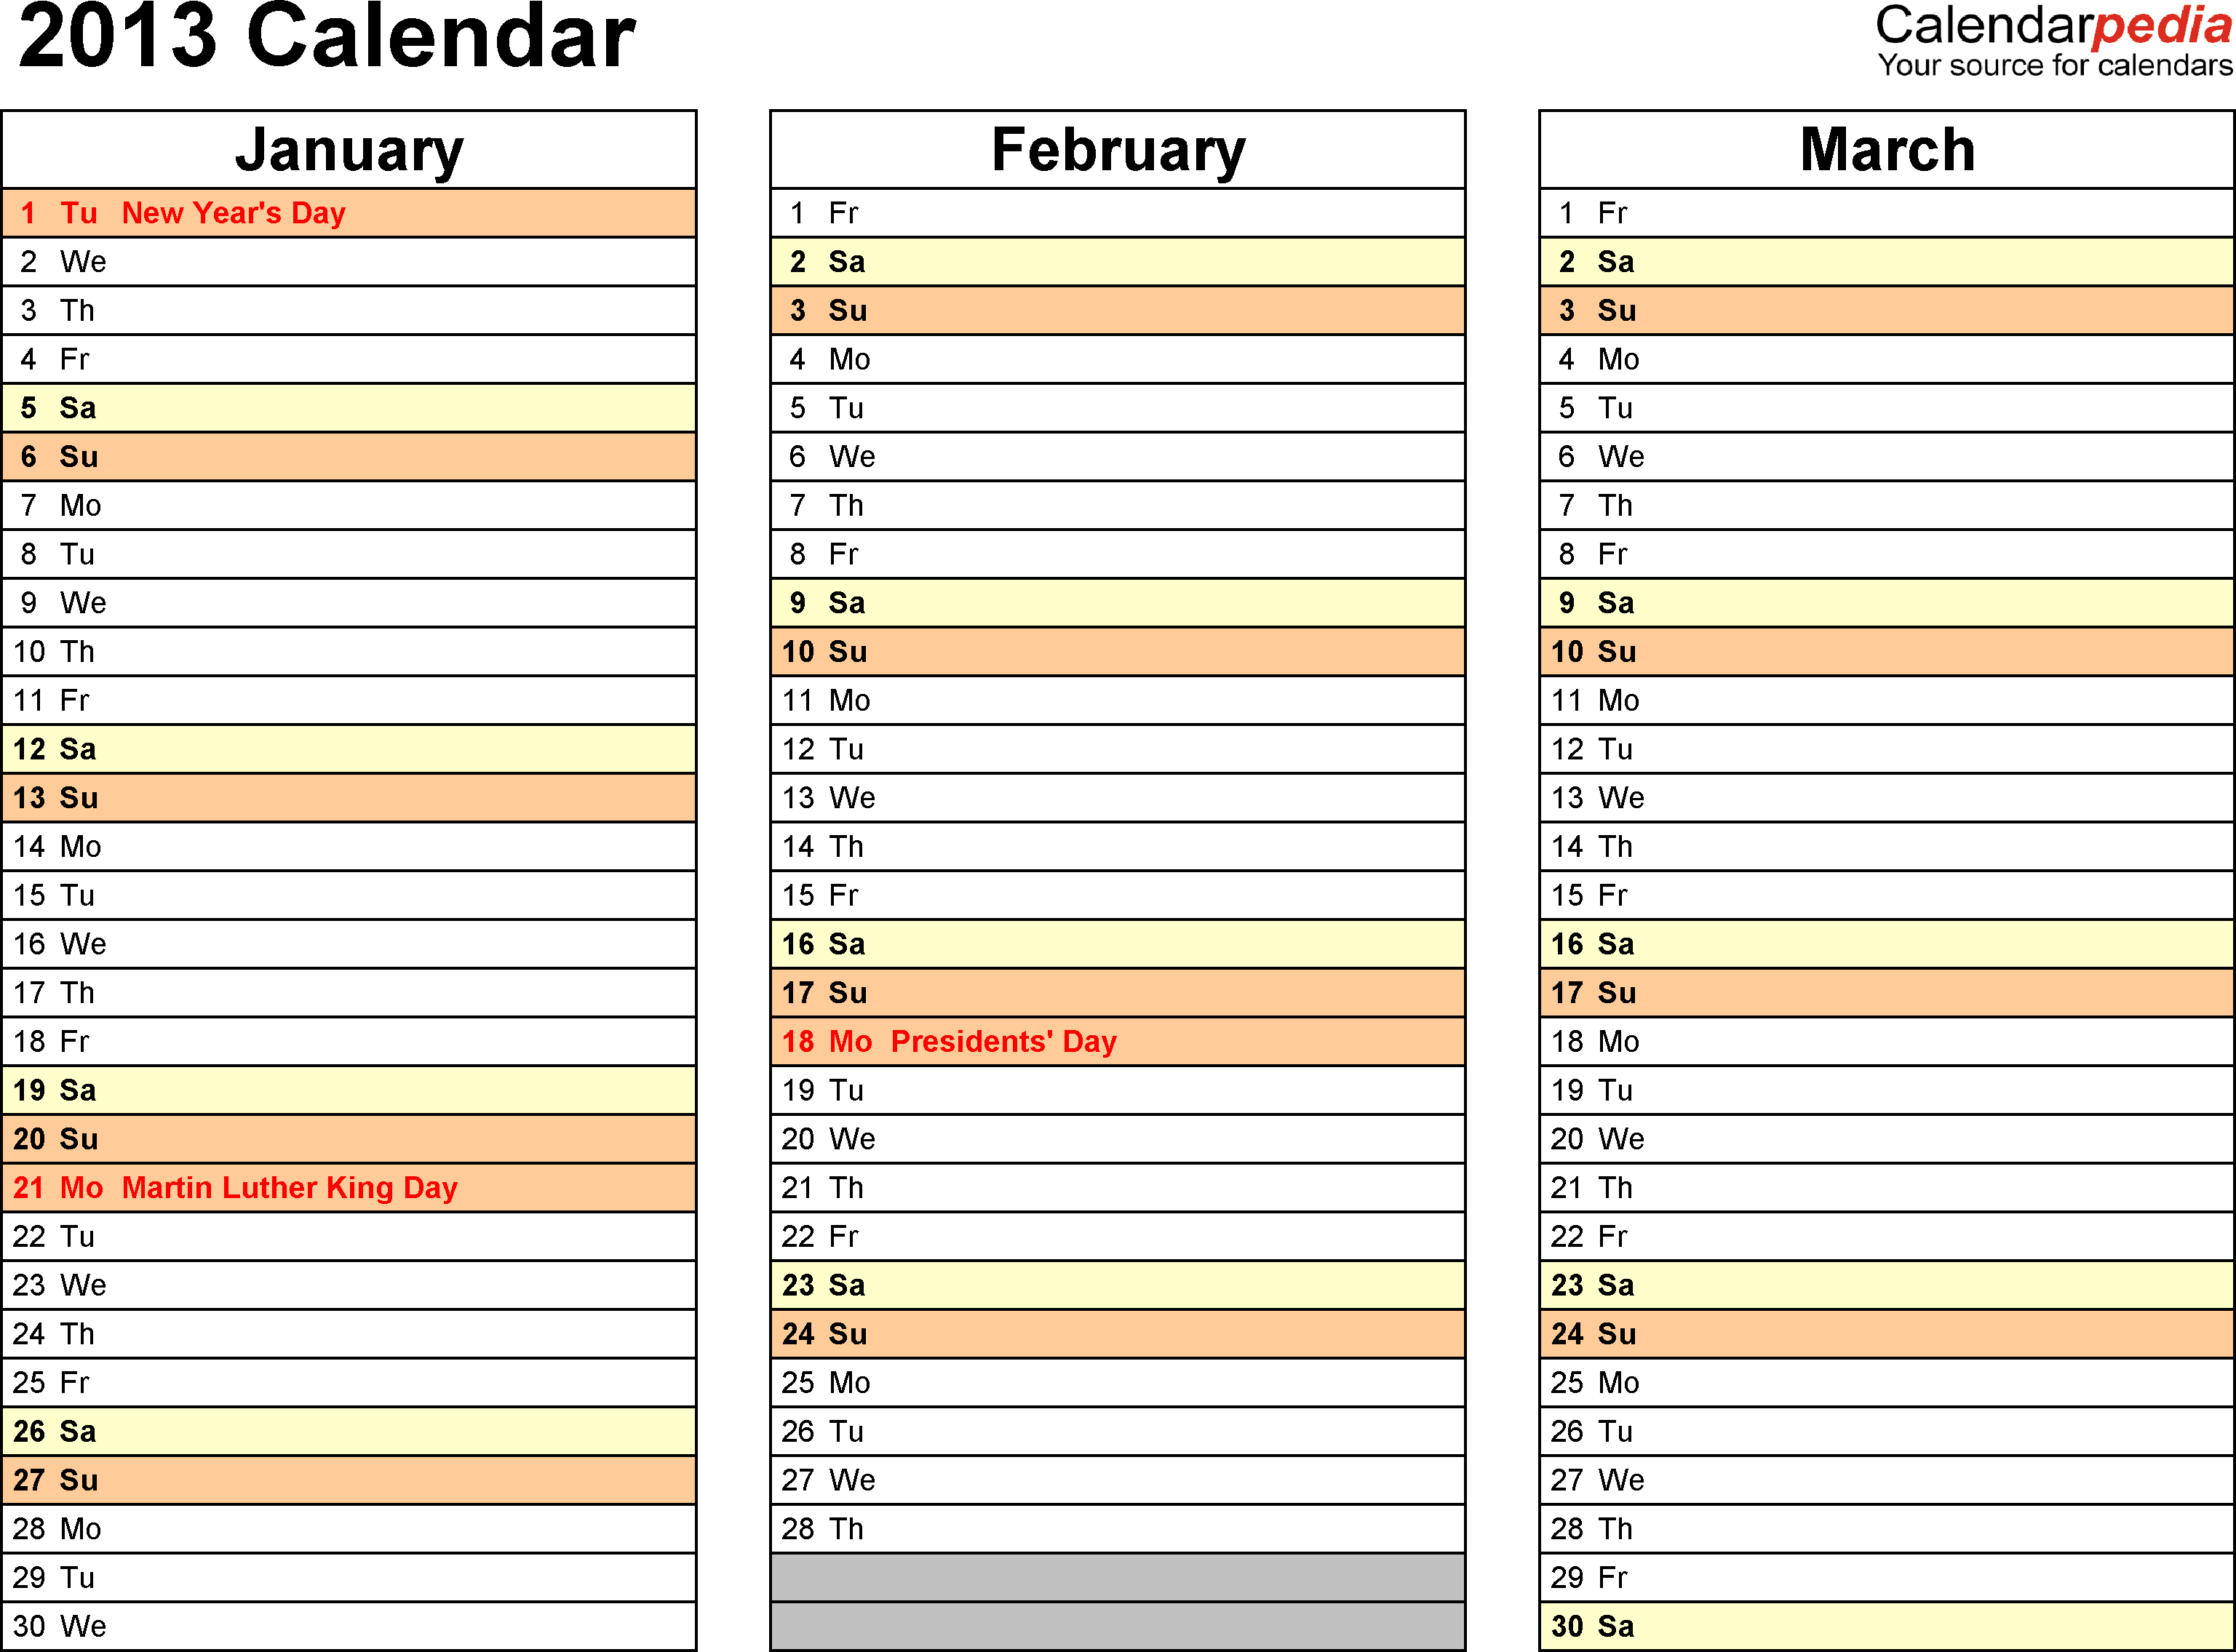 Download Excel template for 2013 calendar template 6: landscape orientation, 4 pages, months horizontally, days vertically, with US federal holidays 2013, paper format: US letter